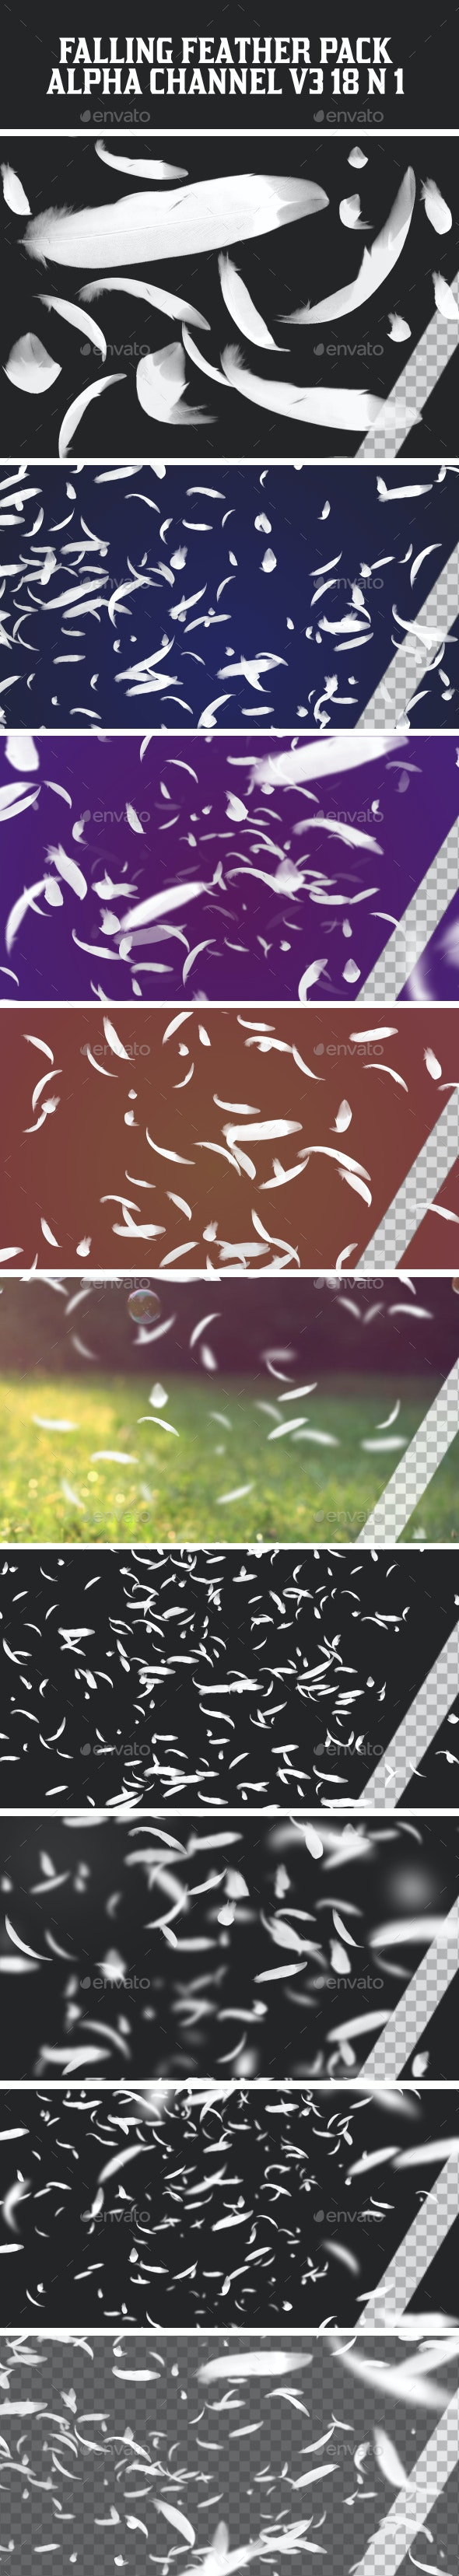 Falling Feather Pack V3 18 in 1 - Nature Backgrounds